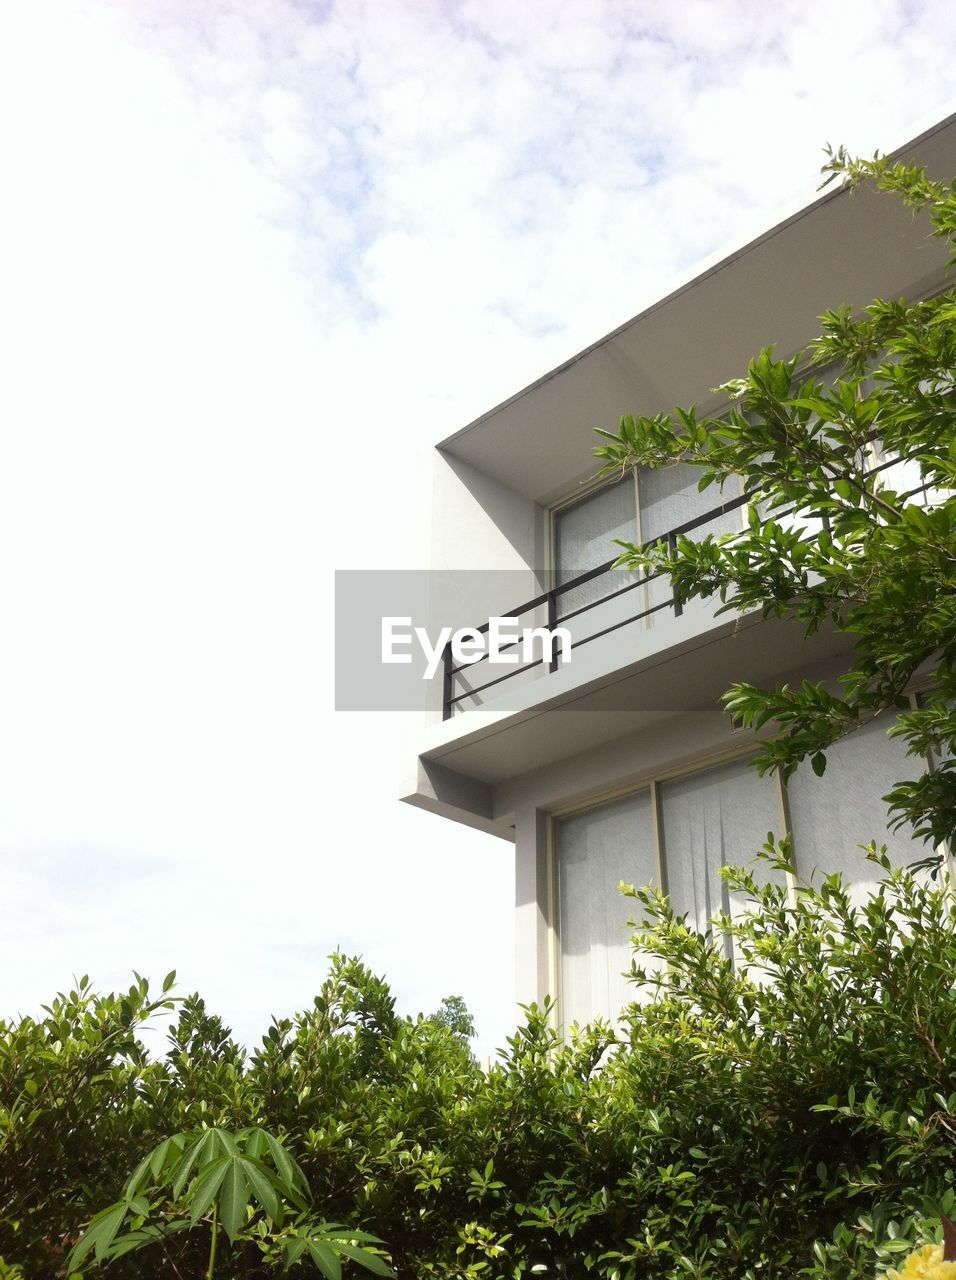 built structure, tree, architecture, low angle view, building exterior, growth, house, day, sky, outdoors, no people, roof, plant, leaf, nature